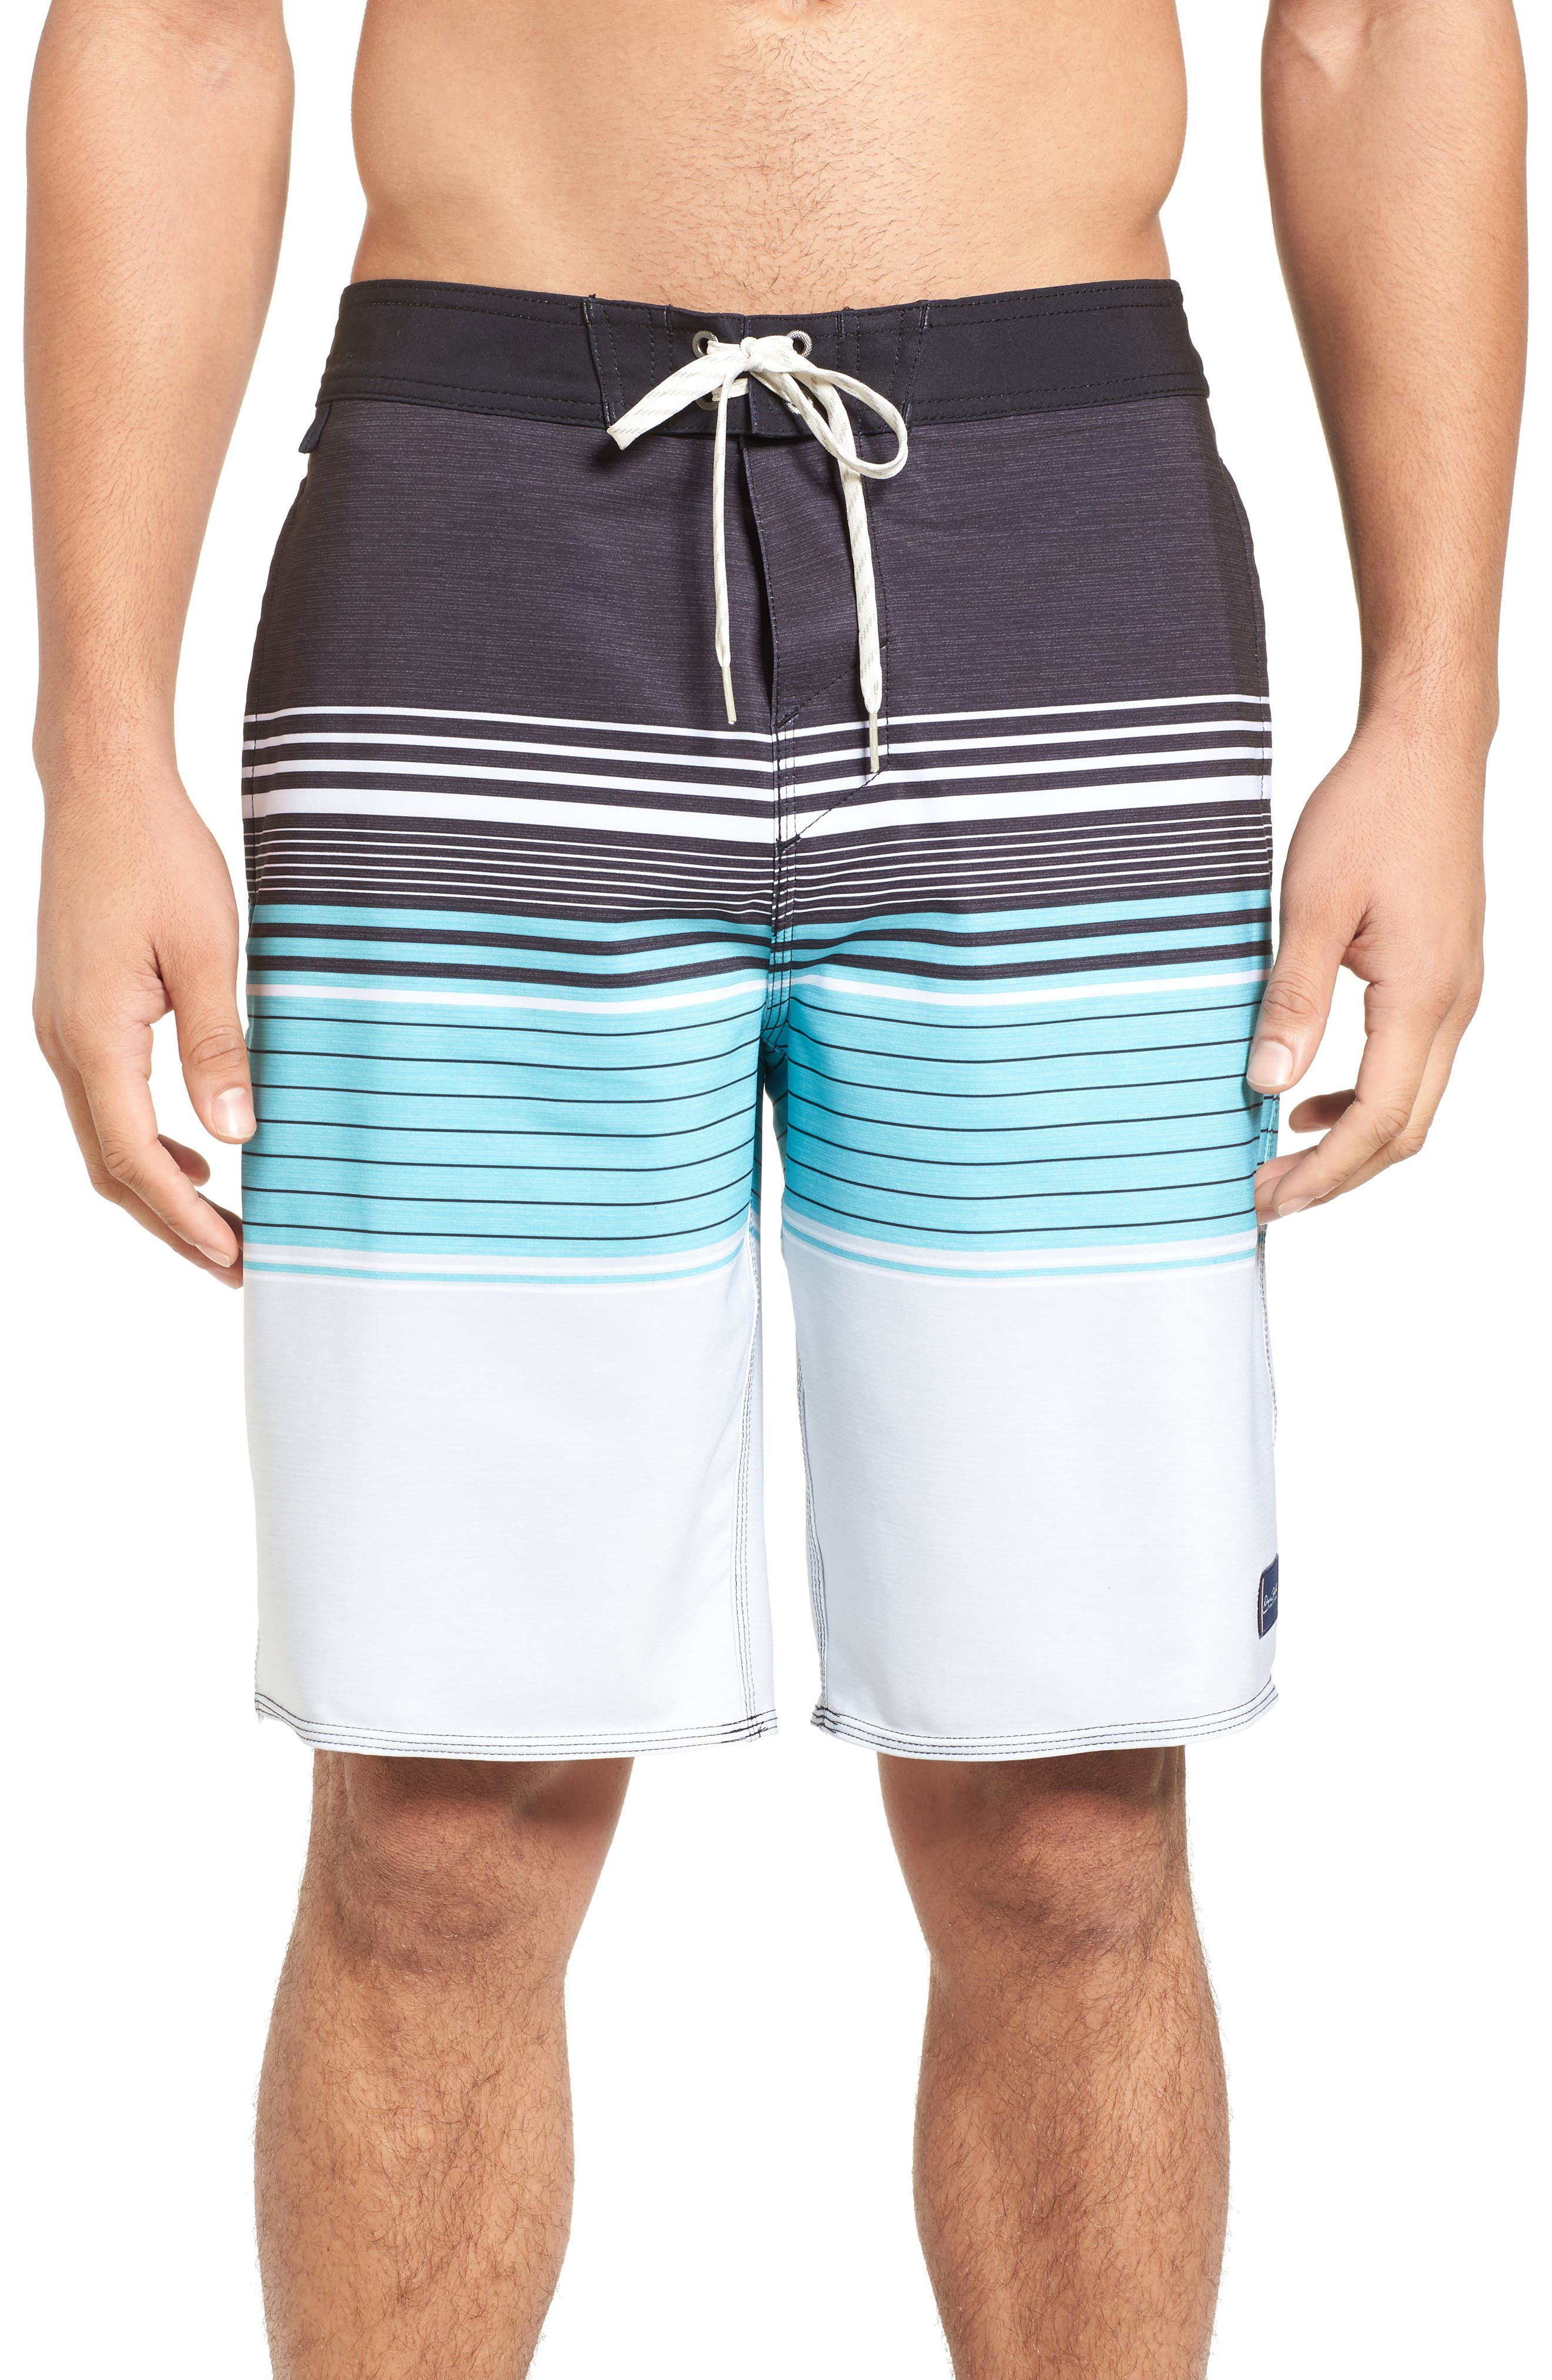 Frontiers Stretch Board Shorts,                         Main,                         color, 001